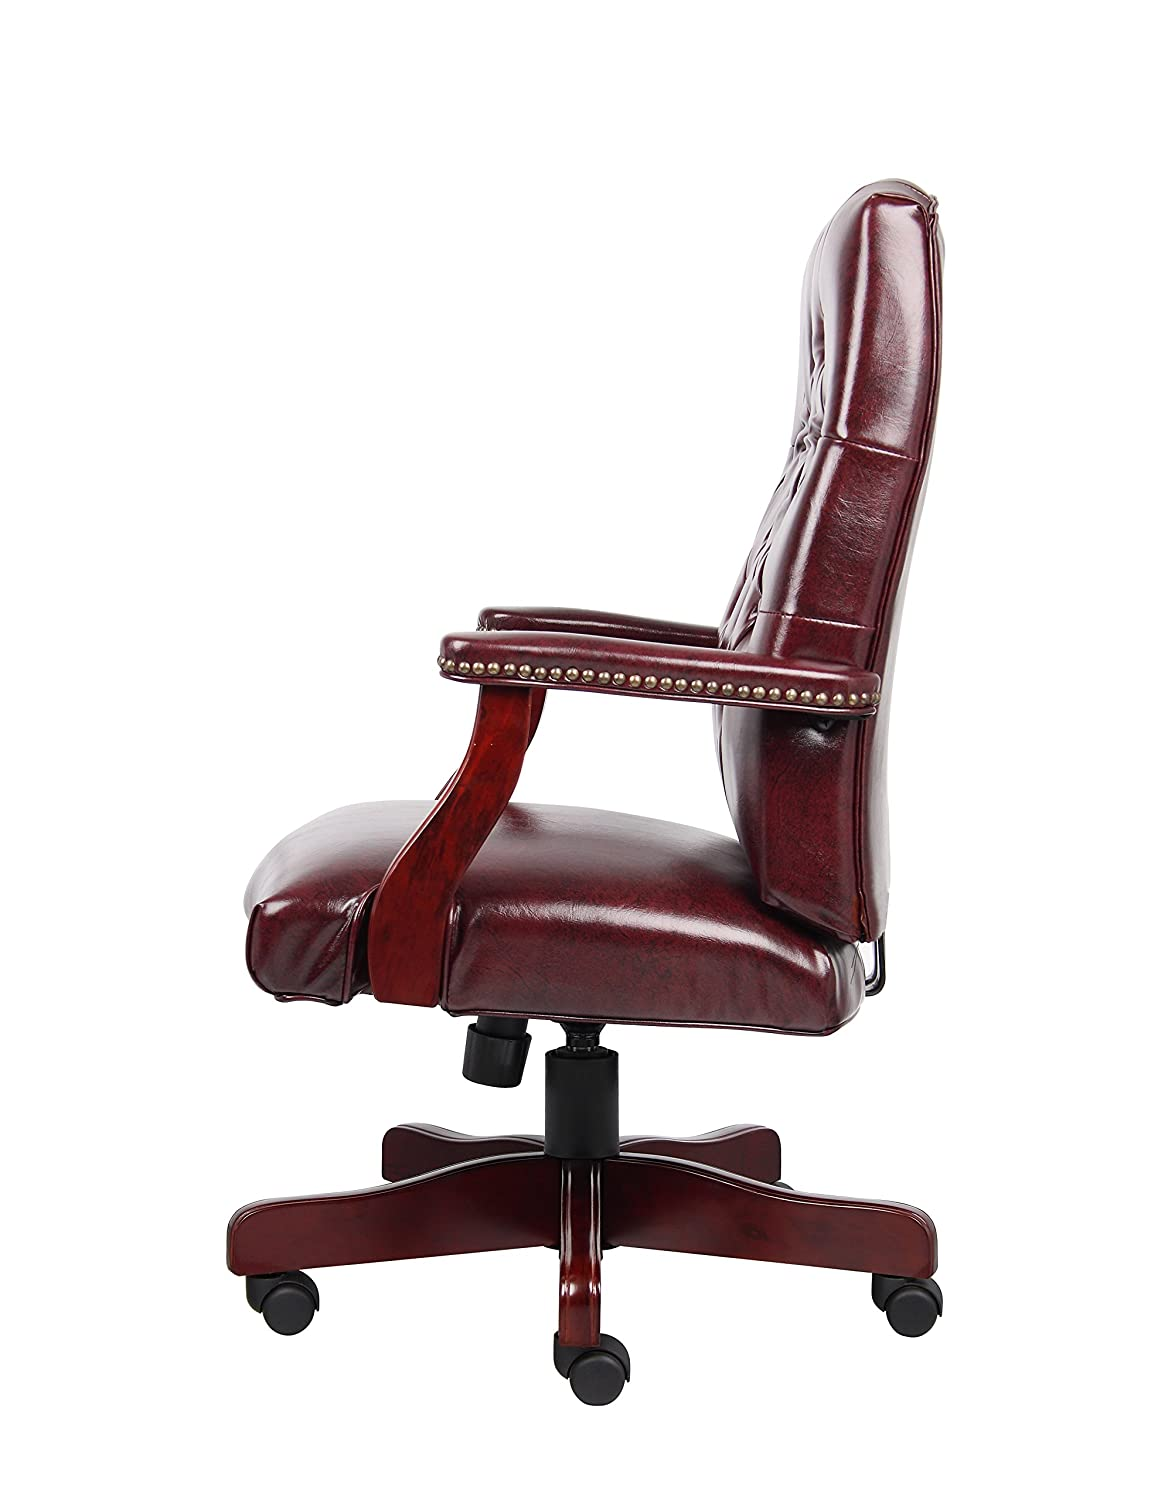 classic office chair. Amazon.com: Boss Office Products B905-BY Classic Executive Caressoft Chair With Mahogany Finish In Burgundy: Kitchen \u0026 Dining L